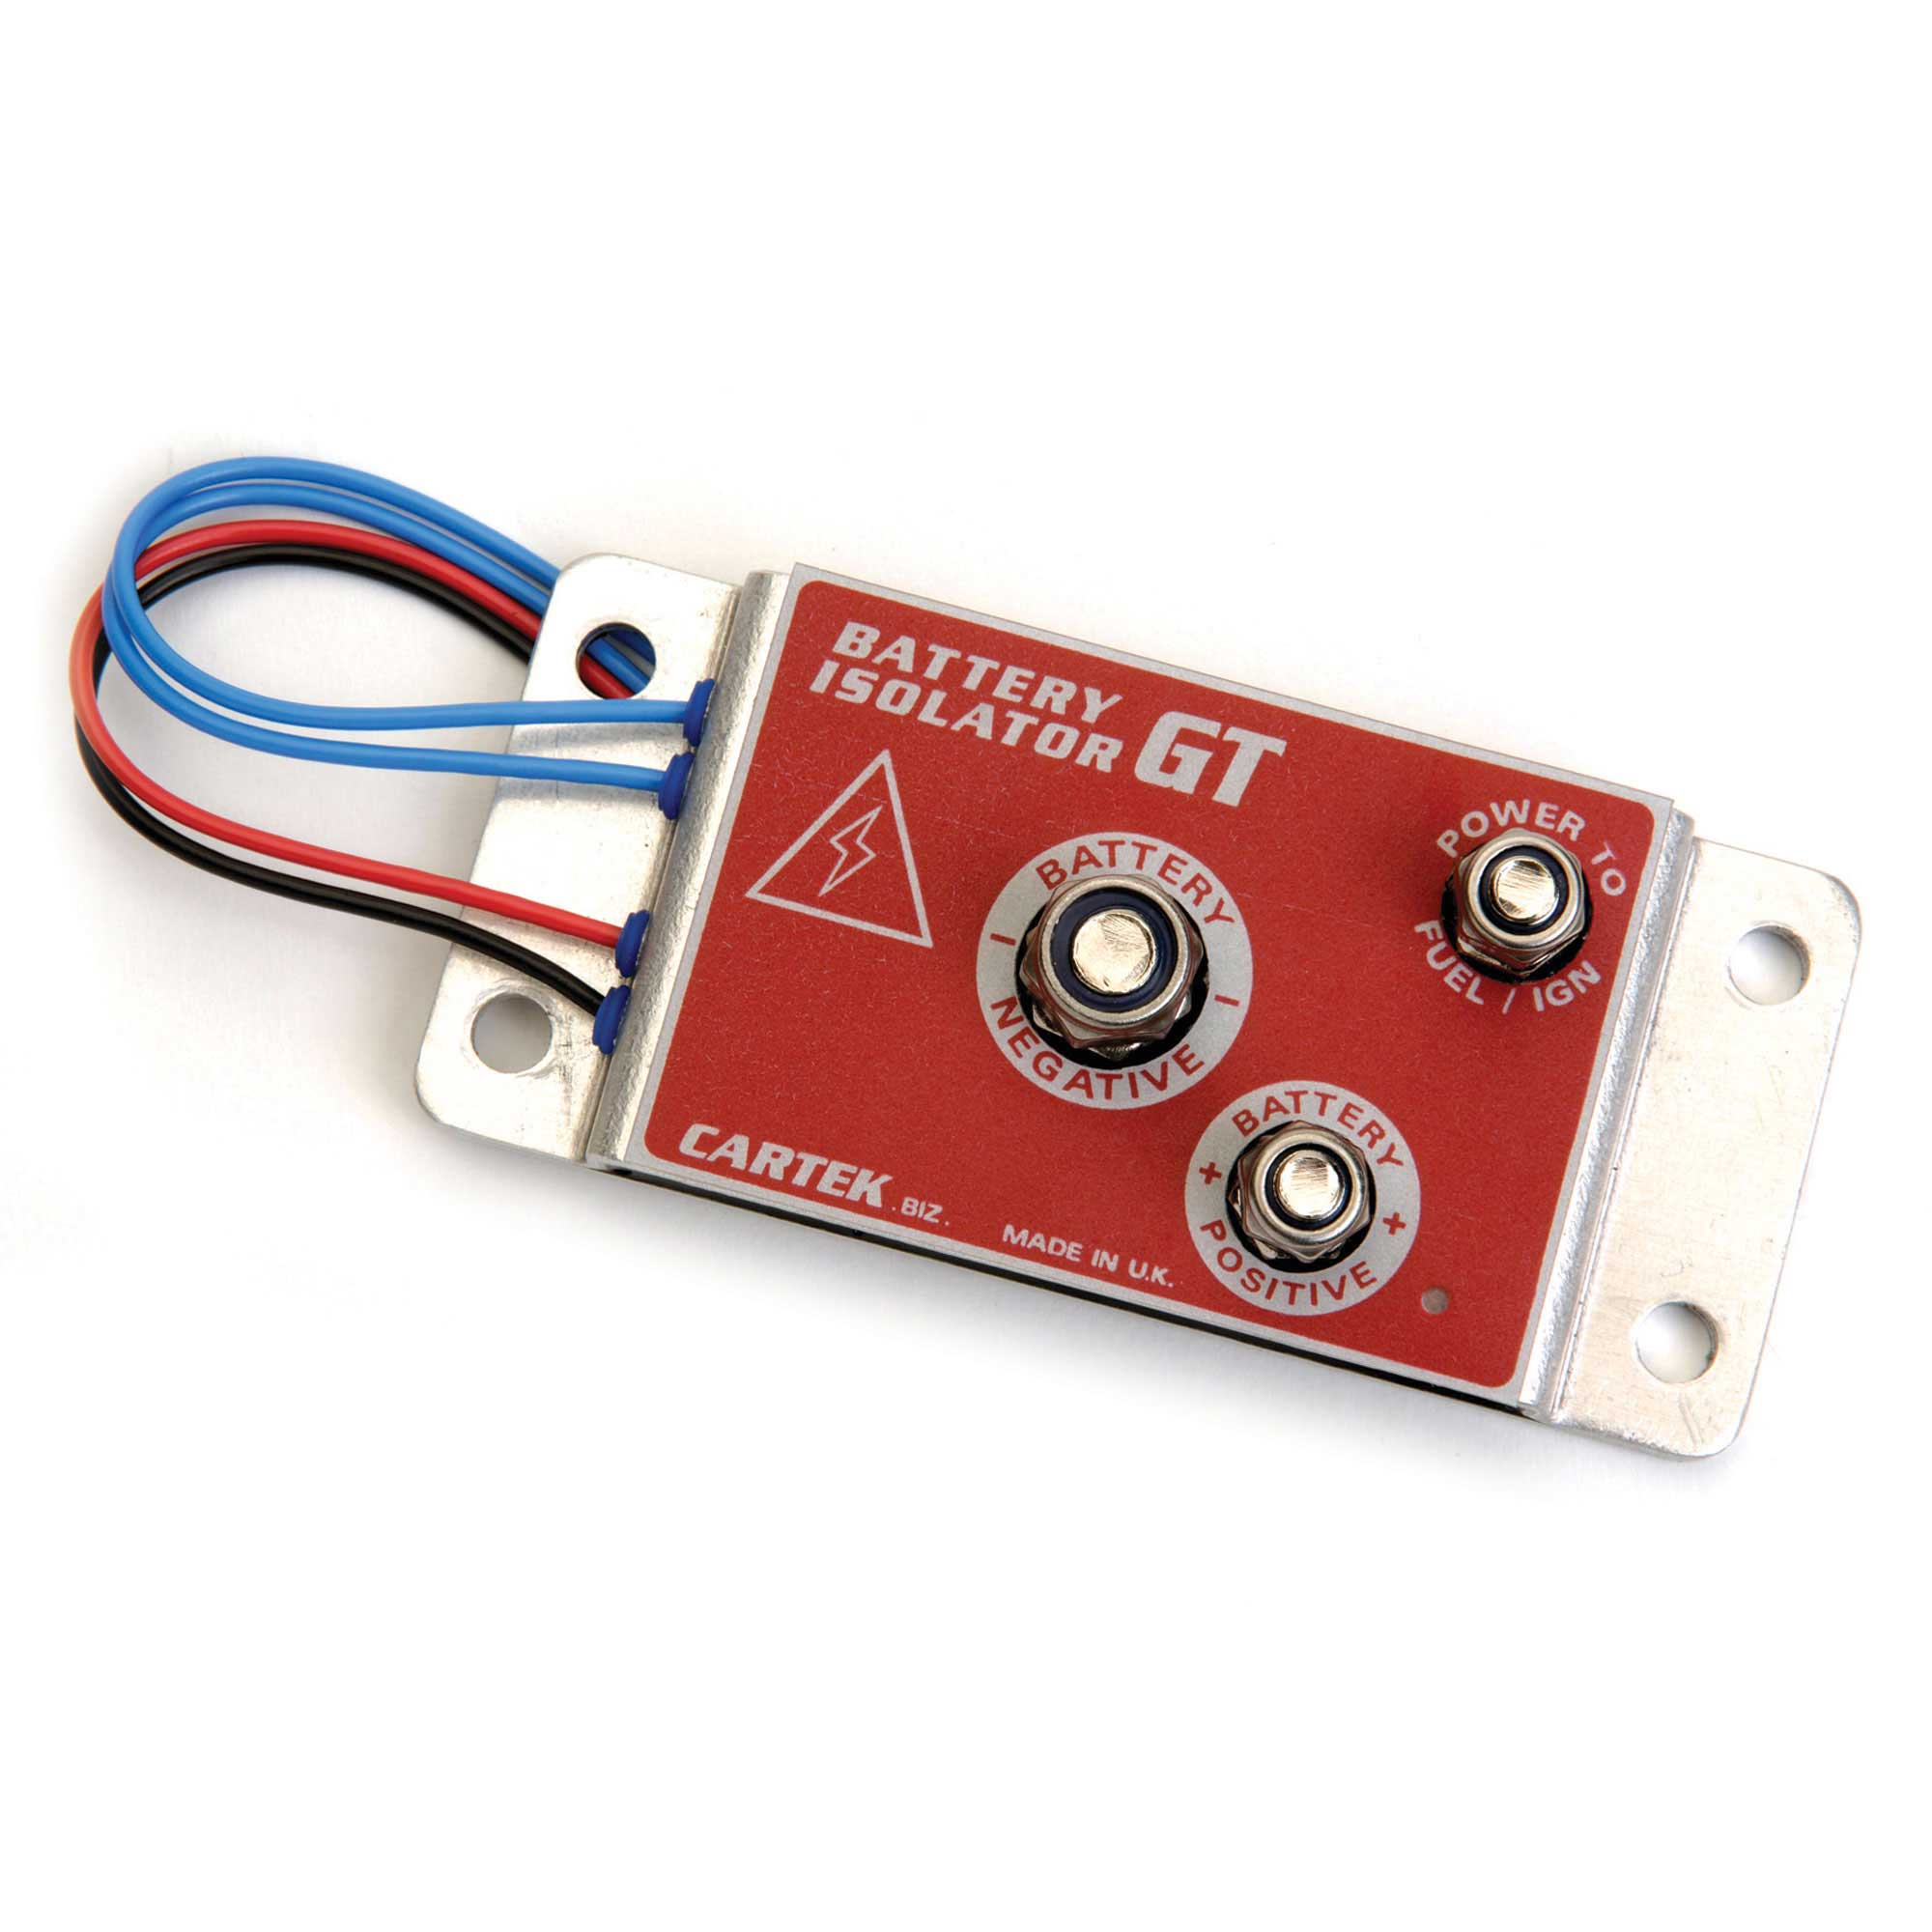 Details about Cartek GT Solid State Electronic Battery Isolator -  Race/Rally/Motorsport